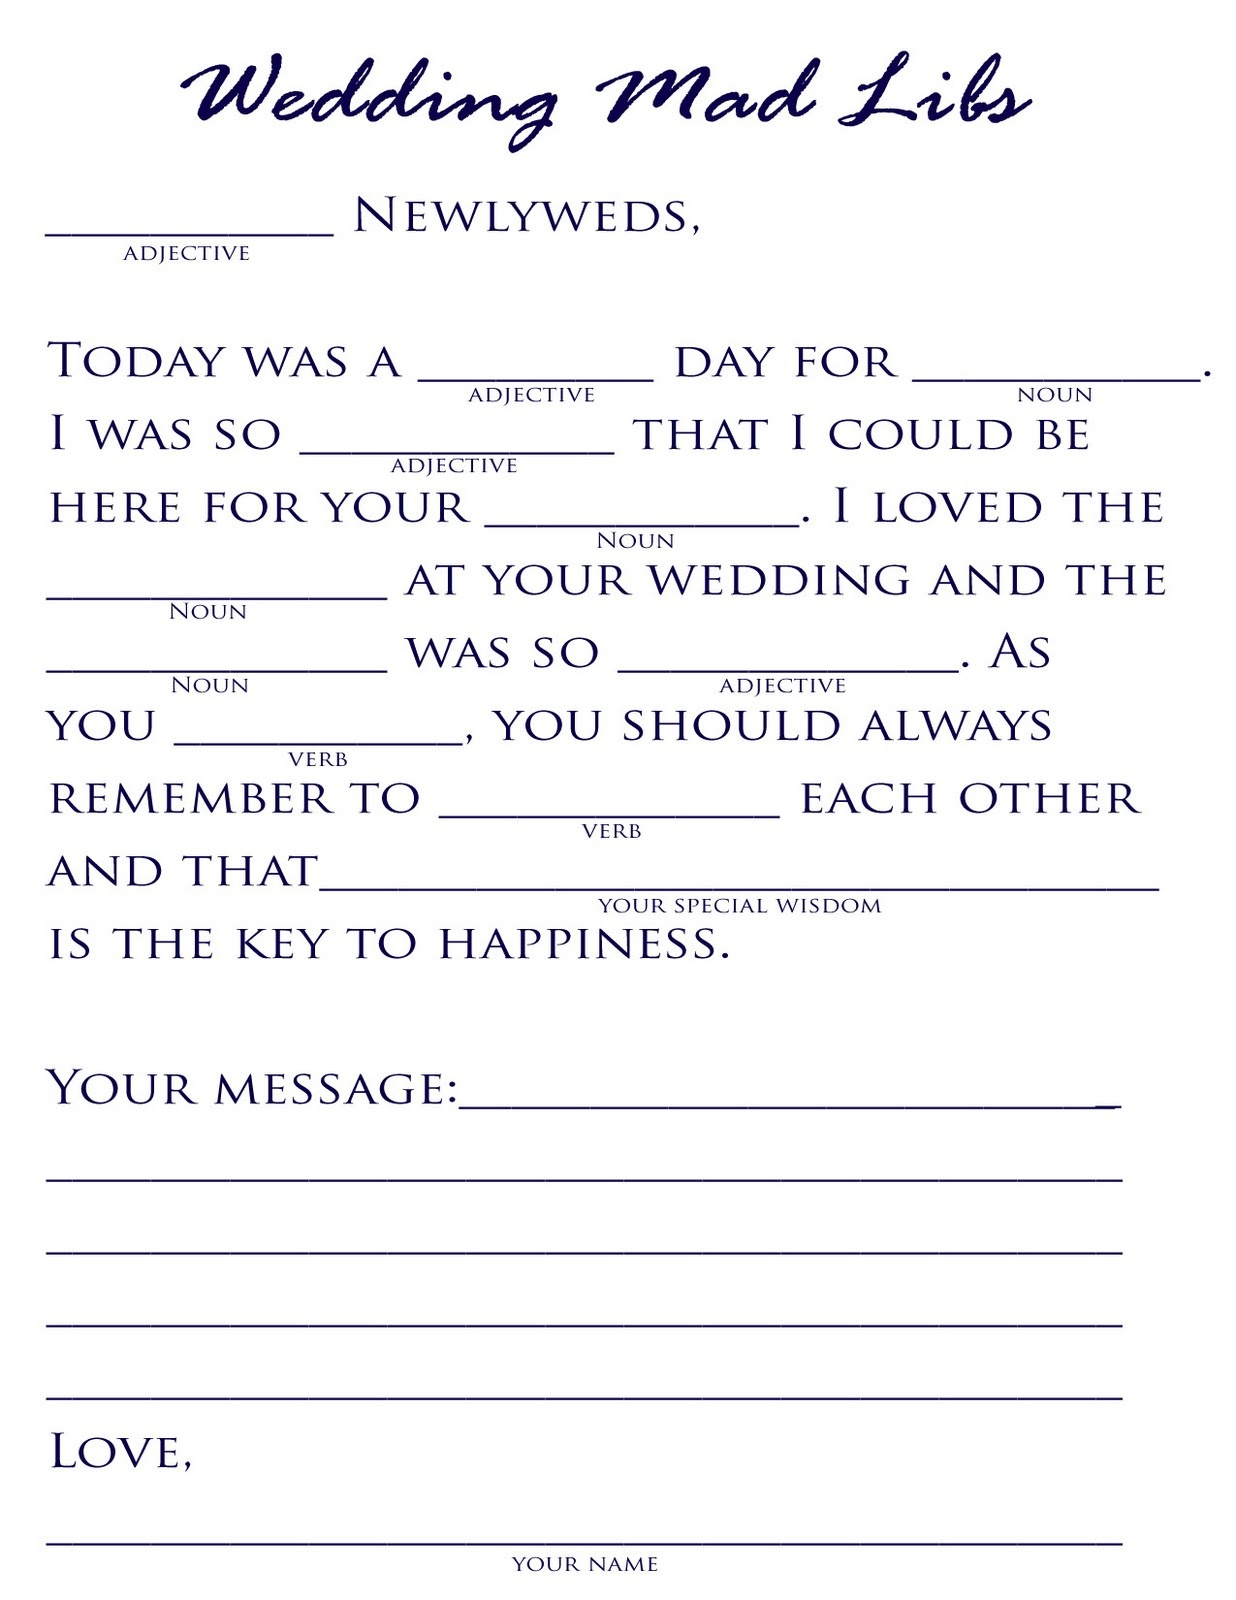 18 Fun Wedding Mad Libs | Kittybabylove - Free Printable Wedding Mad Libs